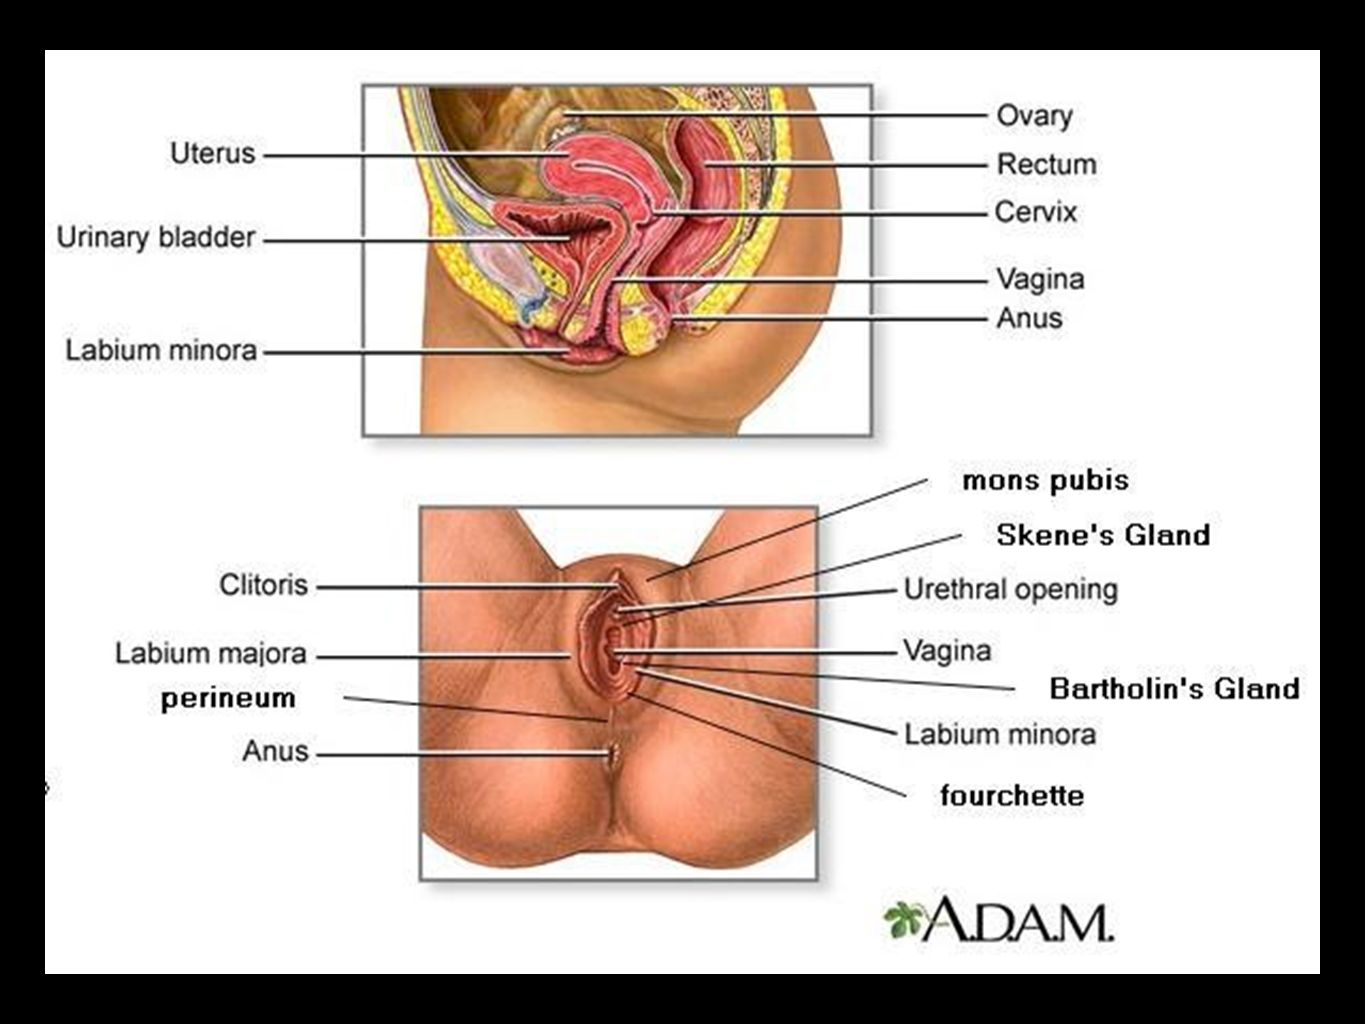 Overview of female reproductive system cancers